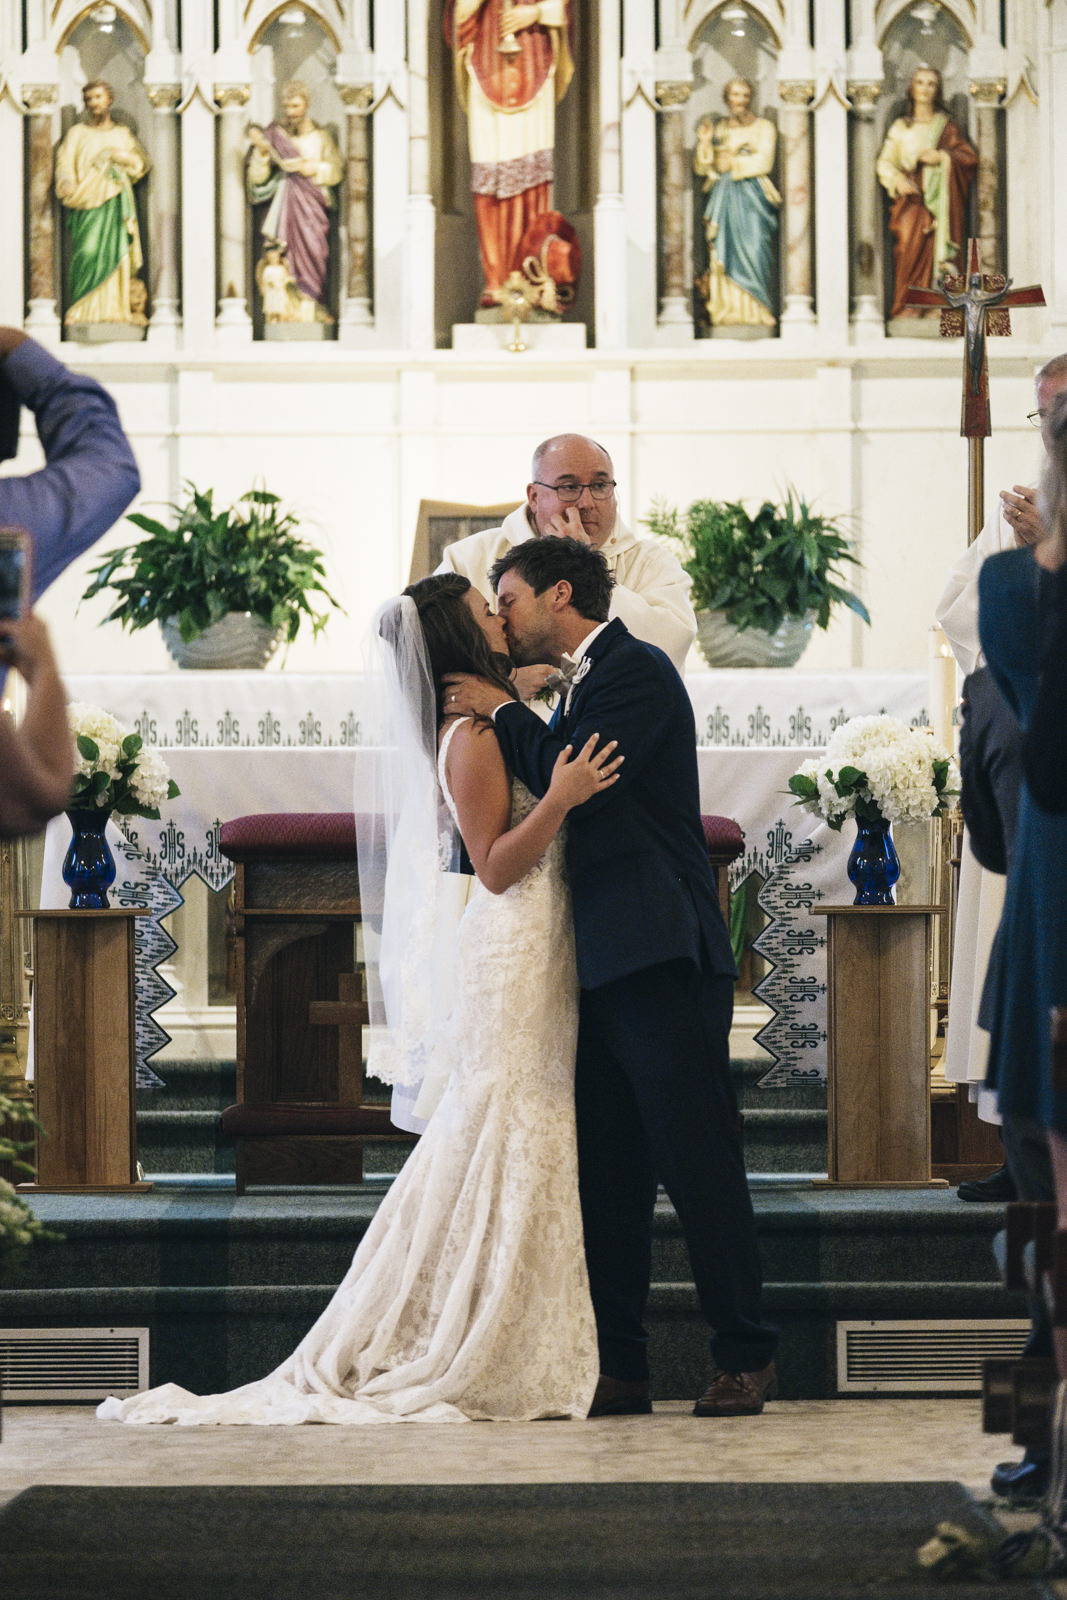 Bride and groom kiss for the first time as husband and wife during their wedding ceremony in Michigan.